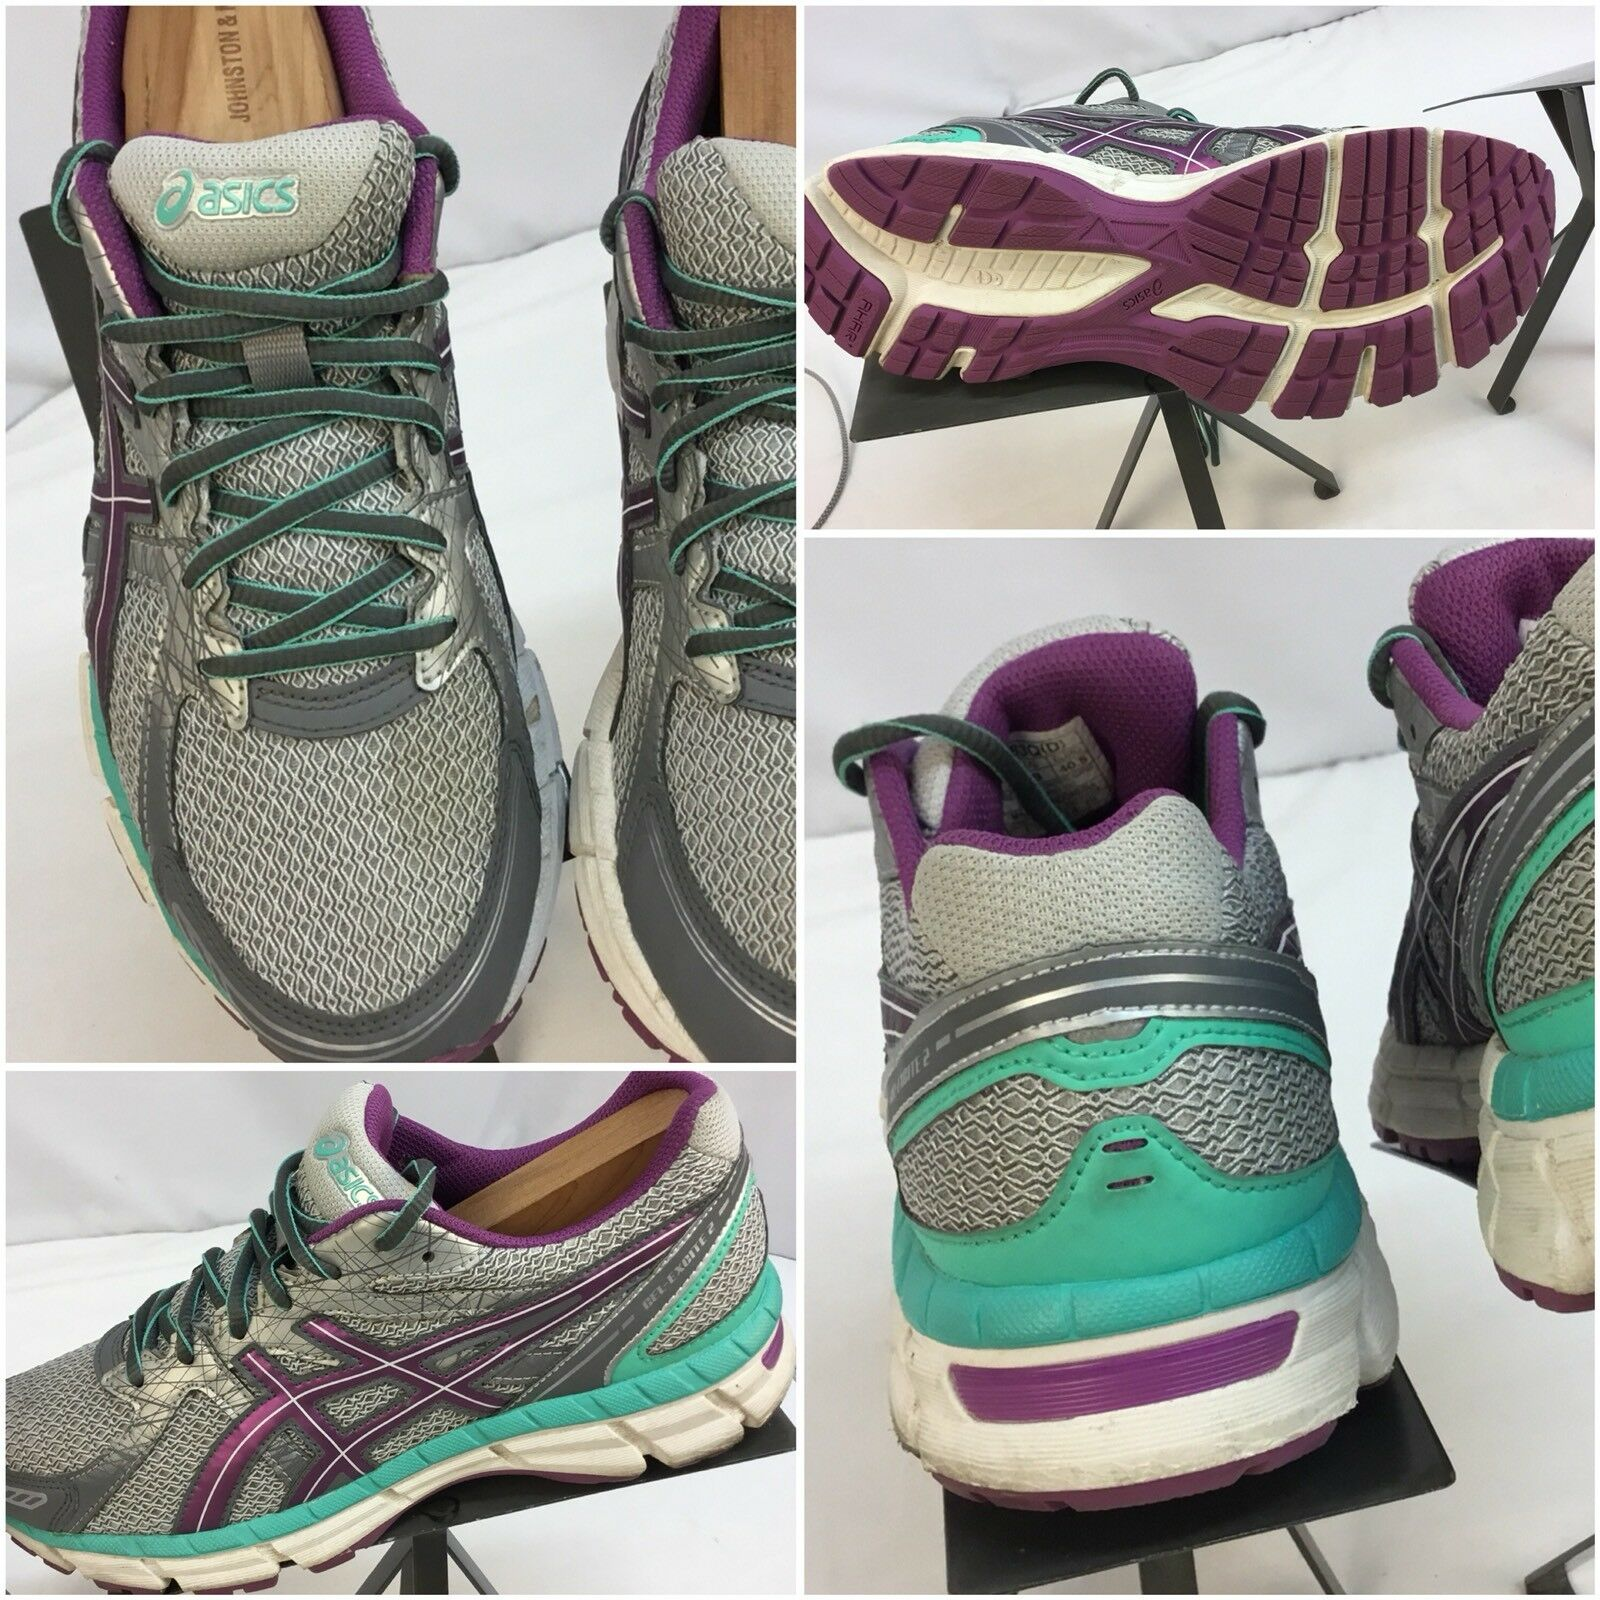 Asics Gel Excite Silver 2 Sz 9 Women Silver Excite Purple Running Shoes Worn Twice YGI K7 e79b82